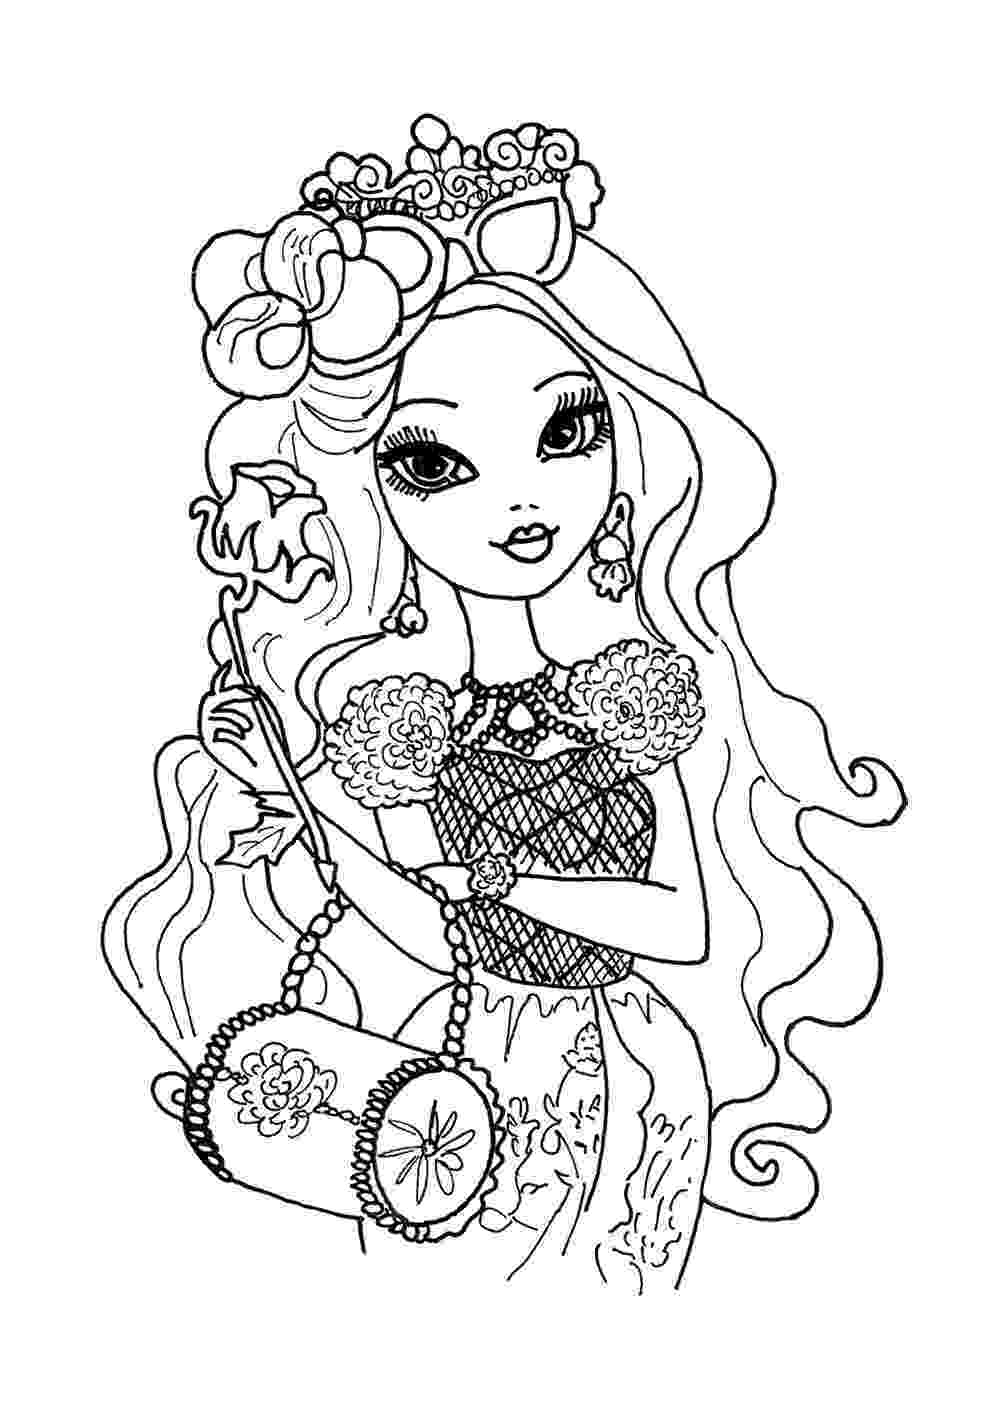 coloring pages for free free printable dragonfly coloring pages for kids coloring for pages free